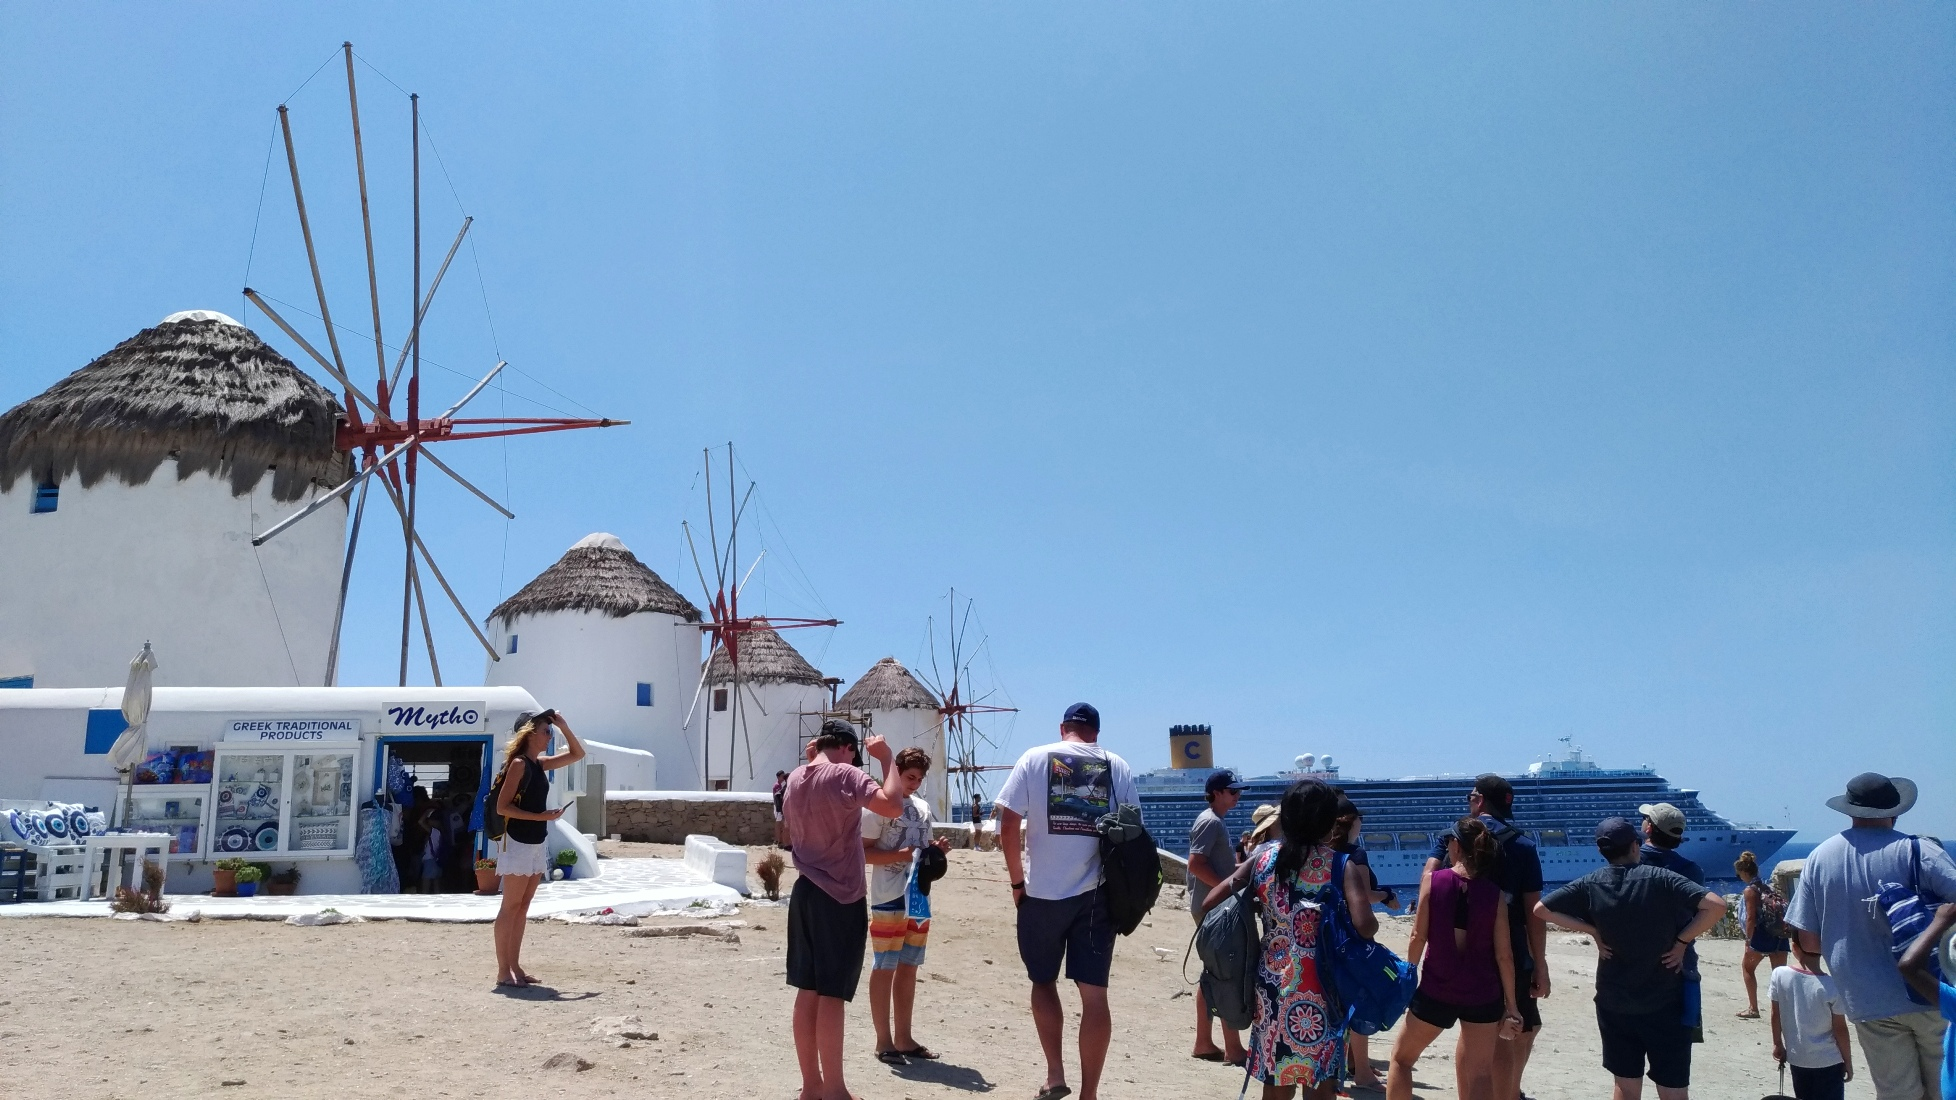 Windmills of Kato Mili Mykonos island, Greece - Best Things to Do in Mykonos